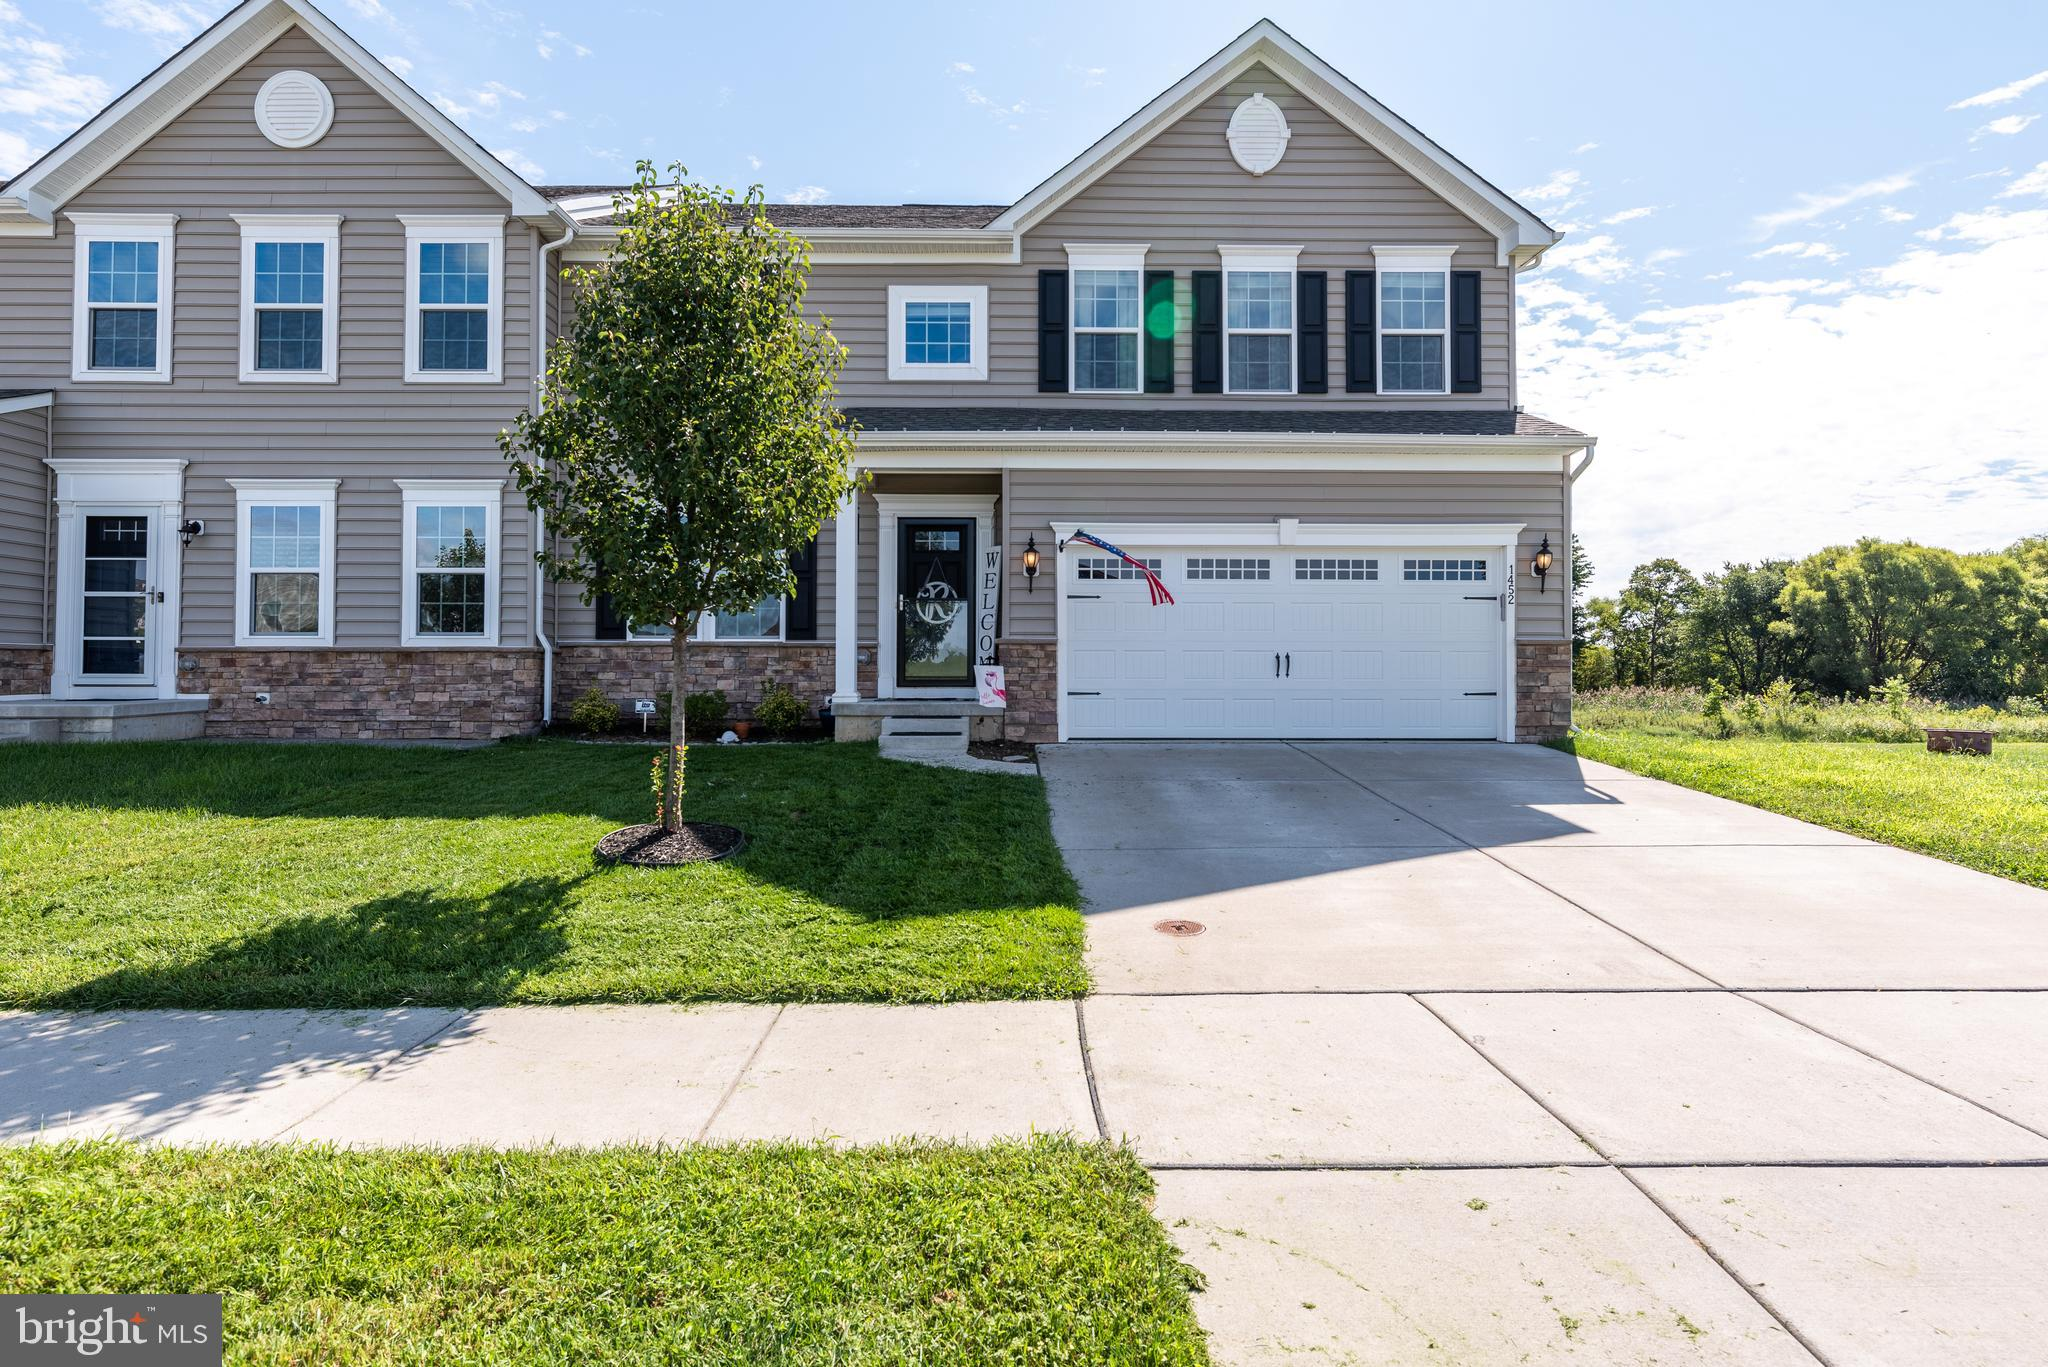 *OFFER DEADLINE OF 10:00AM FRIDAY 9/10* Welcome home! This spacious twin home is ready for it's new owner.  Open space surrounding the yard offers privacy and a quiet space in this beautiful neighborhood conveniently located by rte 13 but tucked away on winding back roads. Inside you will find extensive upgrades including an extended island at the center of the kitchen offering seating and making entertaining easier than ever. Gorgeous wide plank flooring throughout the first floor, a spacious walk in closet in the main bedroom along with a tray ceiling and huge spare bedrooms make this home perfect for any buyer (plus a partially finished basement). Home is being sold in as is condition.